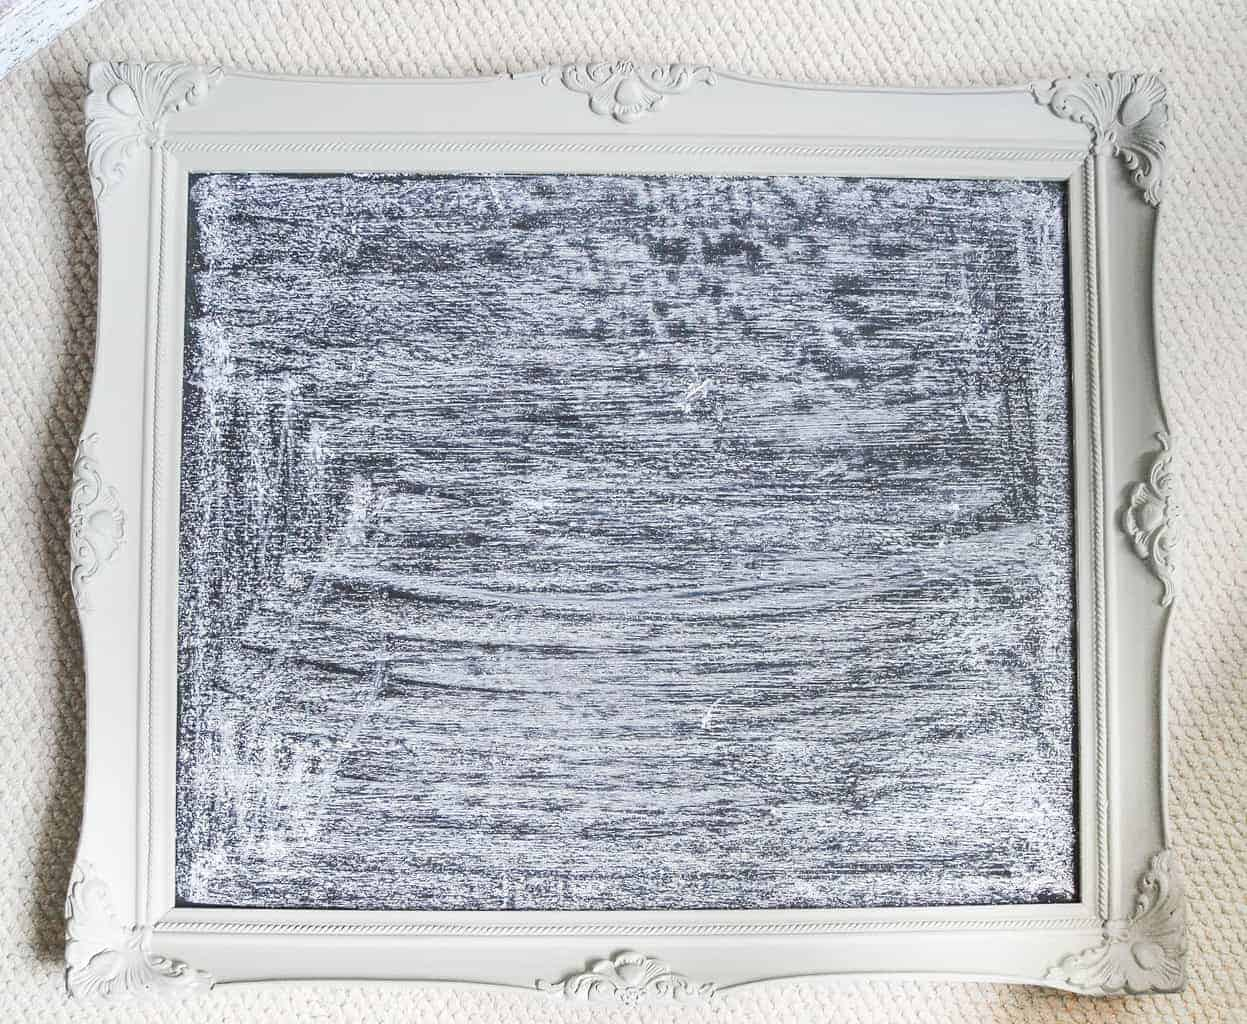 DIY Chalkboard From Thrift Store Frame - My Creative Days